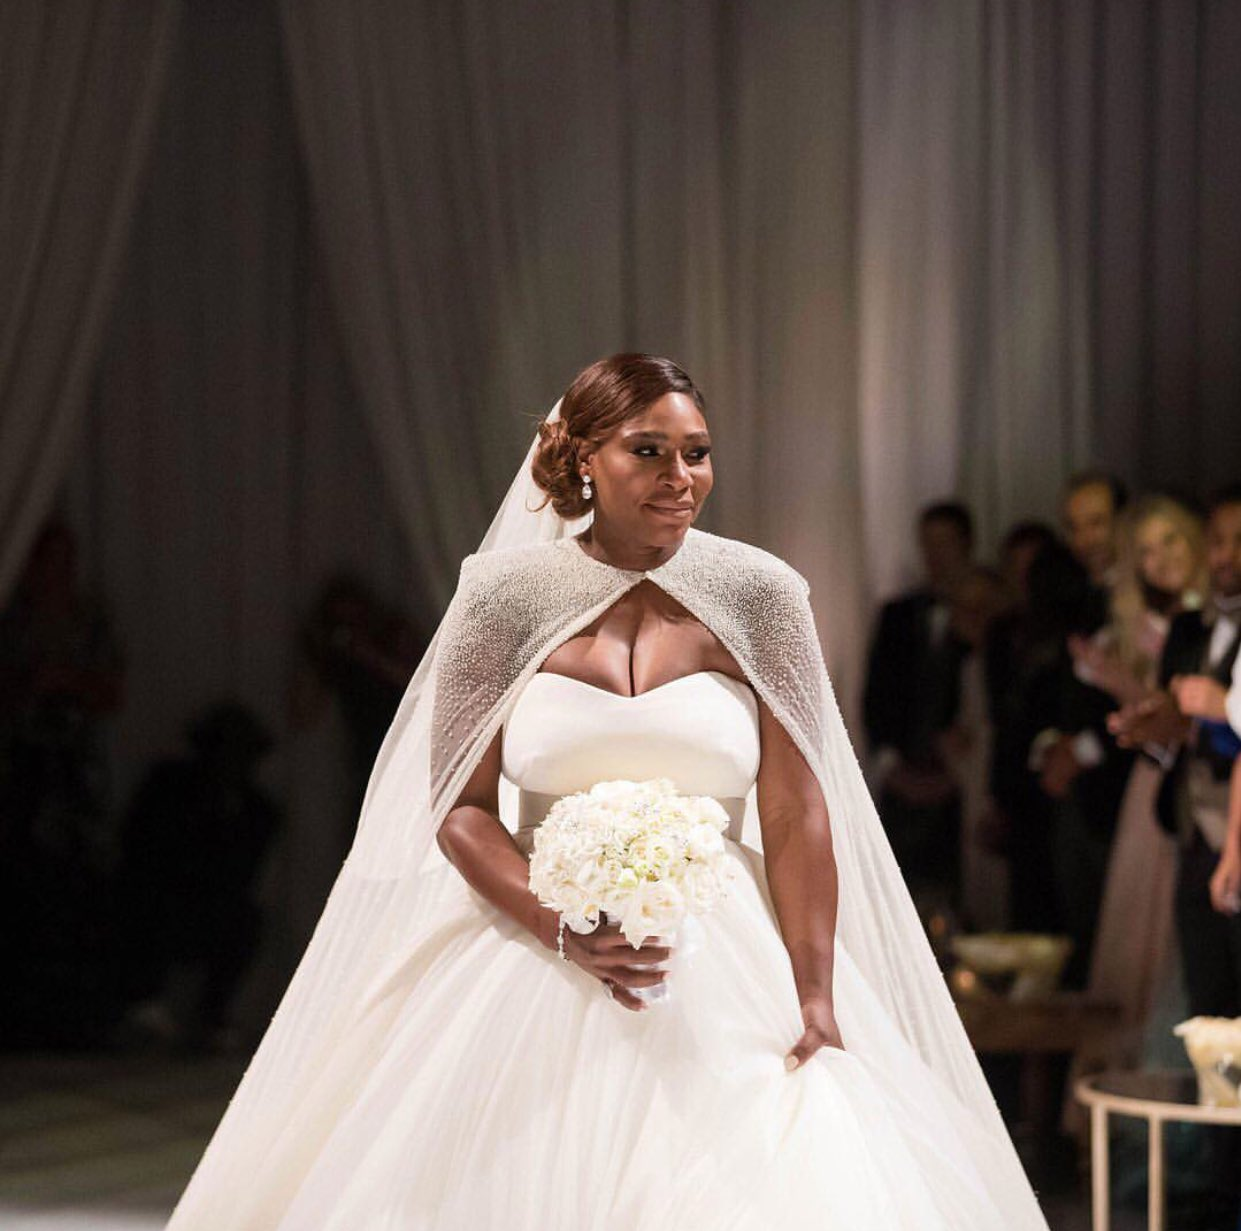 Serena Williams' wedding to Alexis Ohanian in New Orleans yesterday �� https://t.co/SoZCSvdk4J